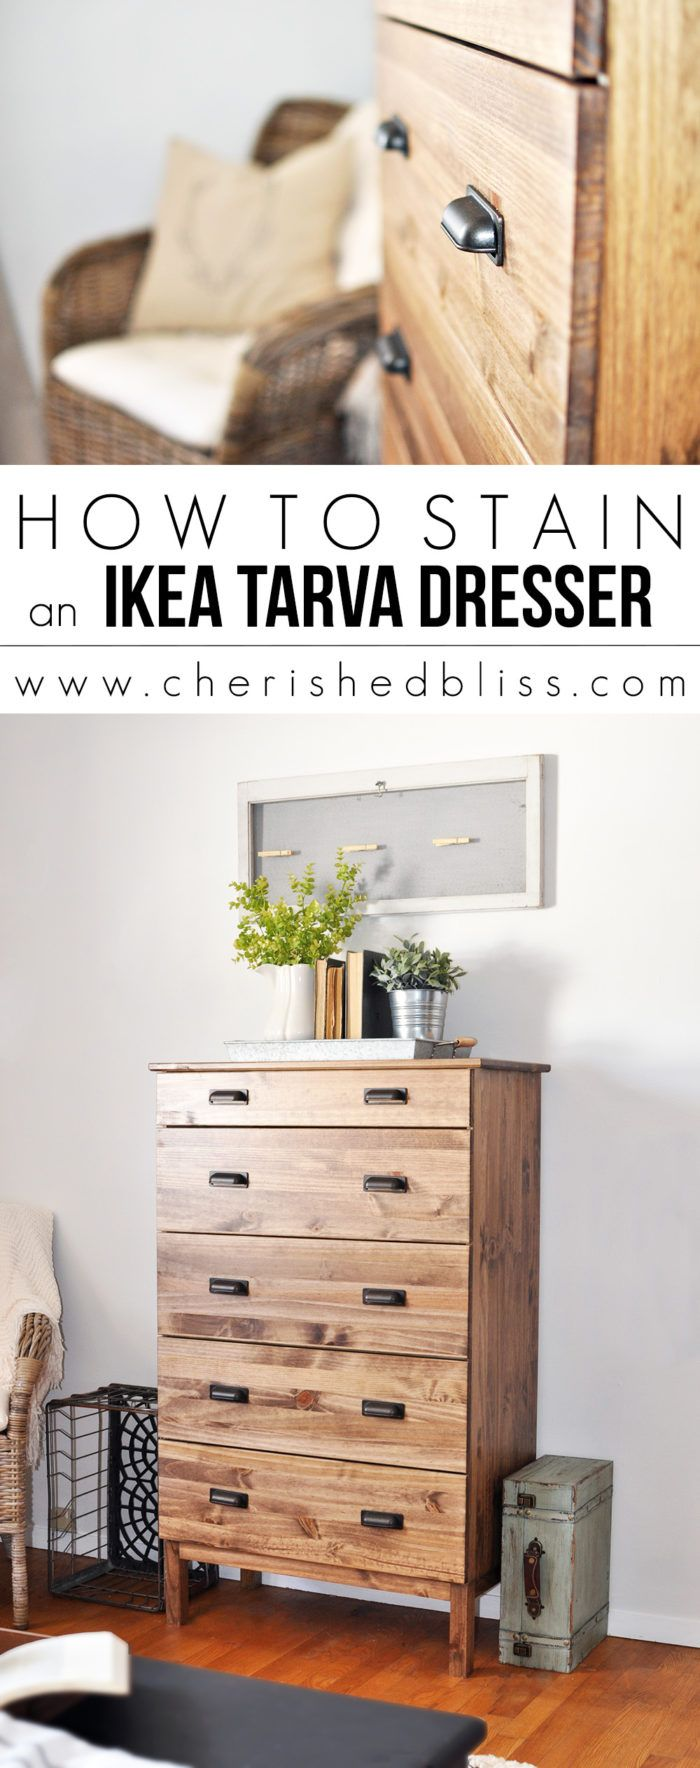 best ikea images on pinterest bedroom bedrooms and chest of